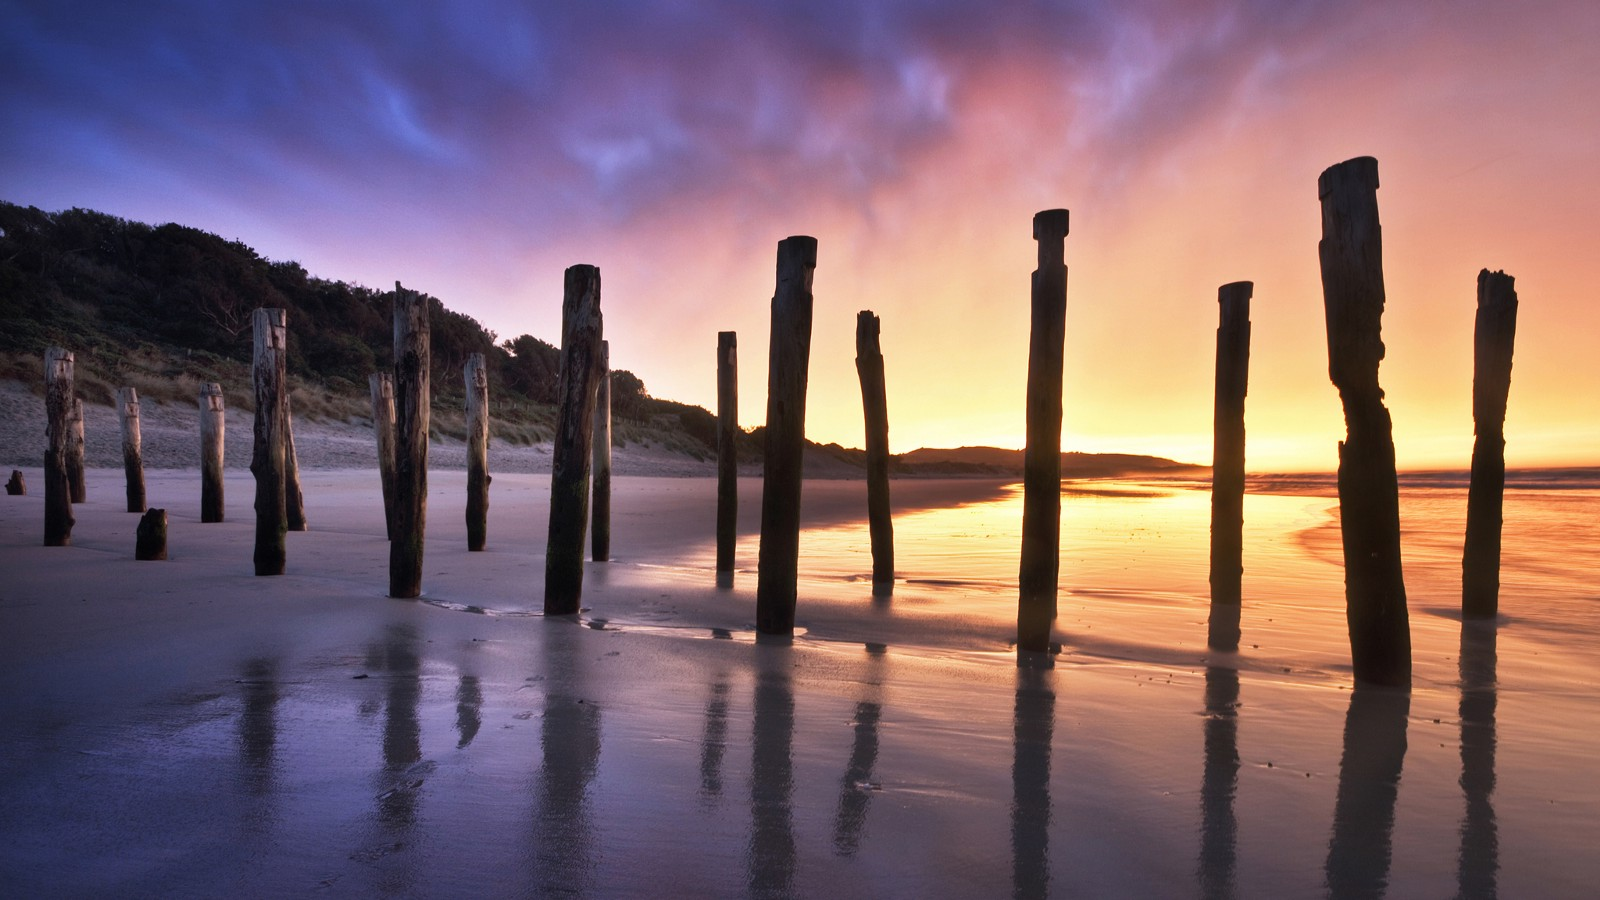 The Old Jetty Remains at St. Clair Beach in Dunedin, New Zealand